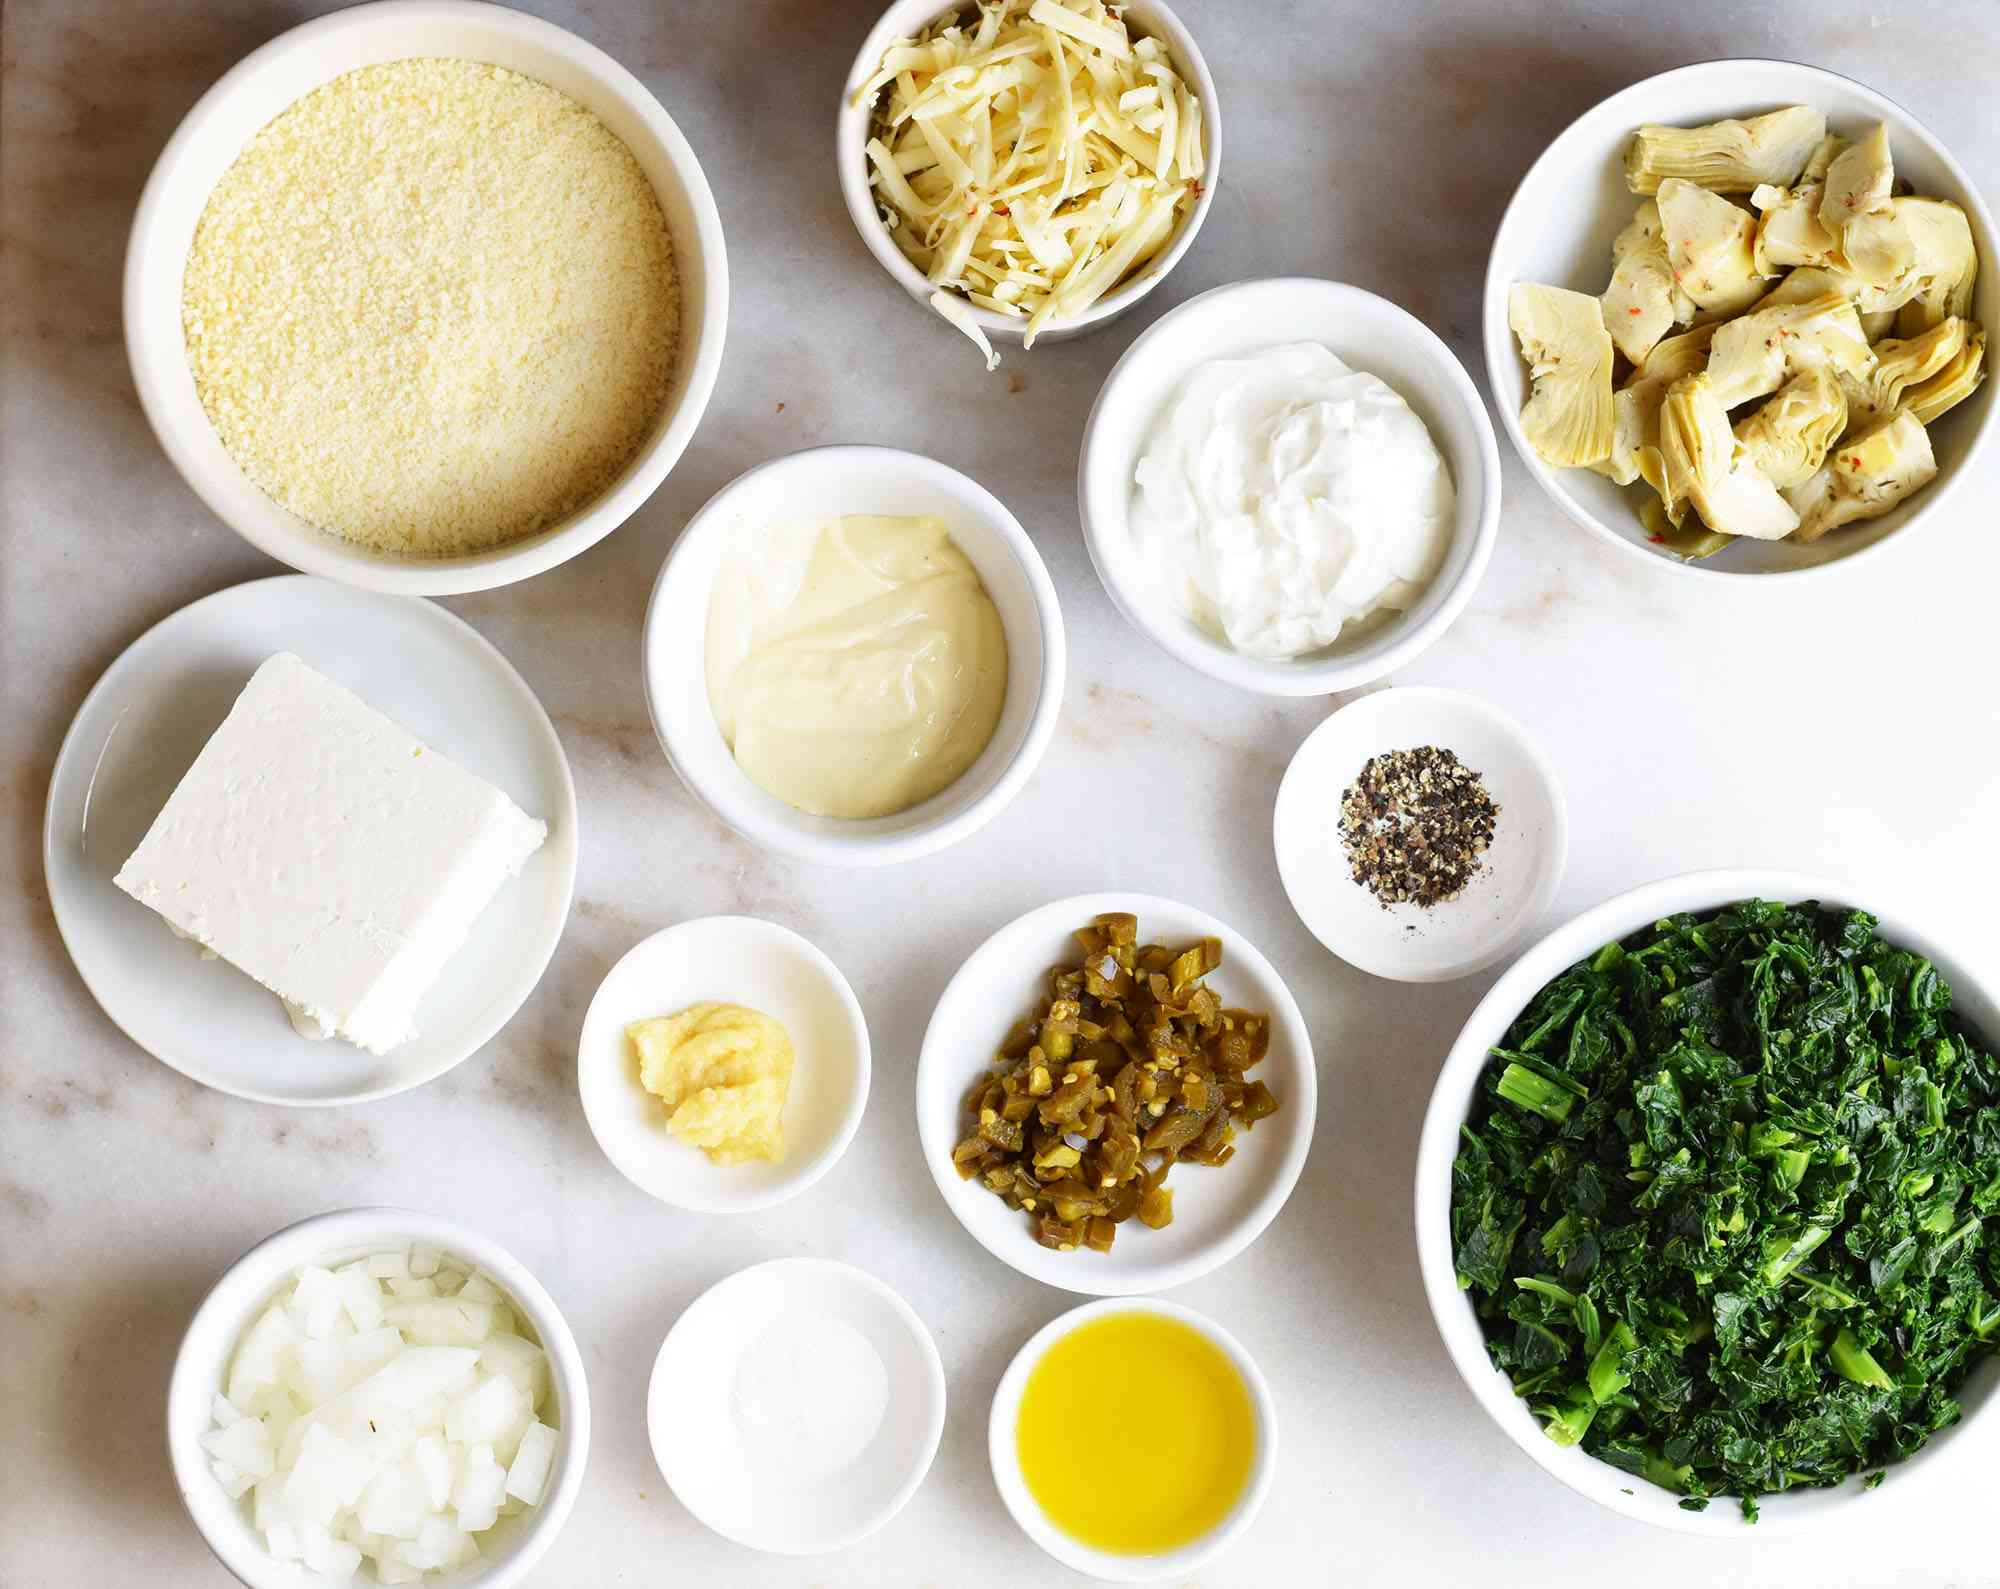 ingredients for spinach and artichoke dip